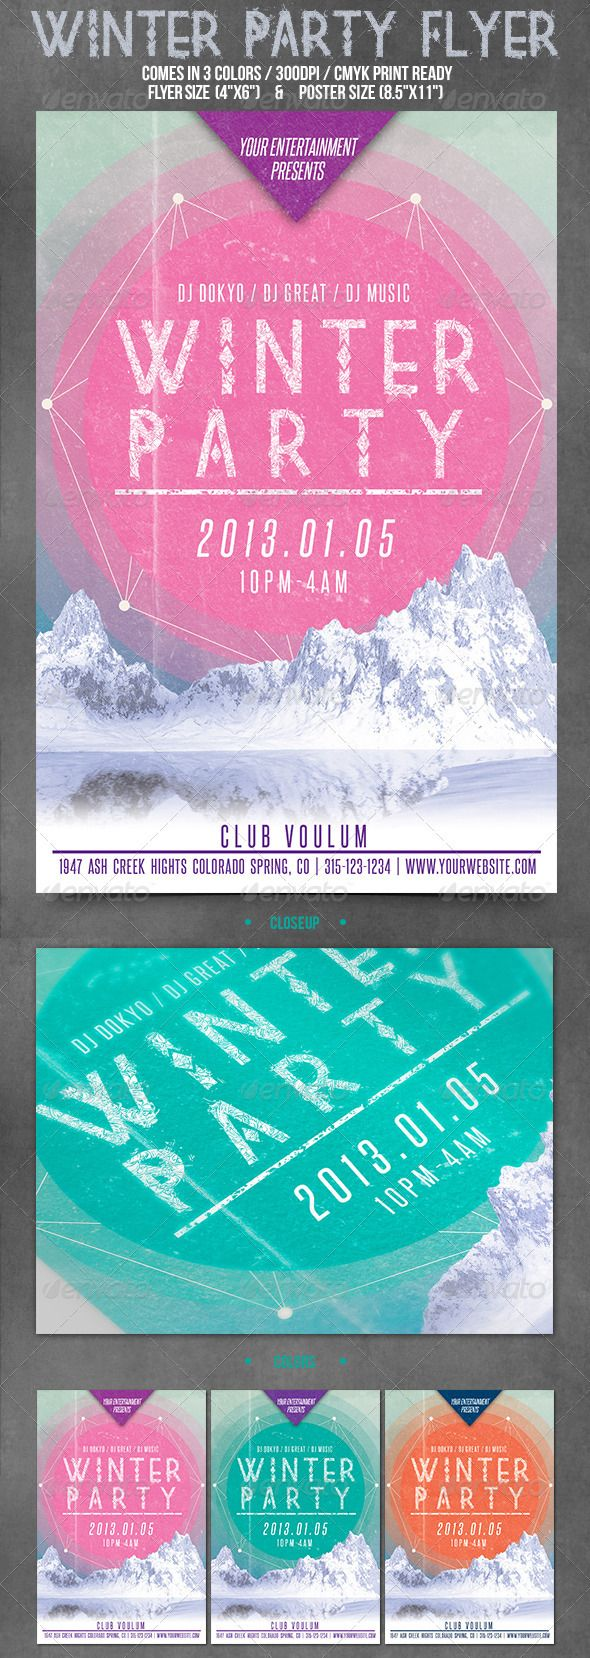 "Winter Party Flyer  #GraphicRiver         • 4""x6""(flyer) + 8.5""x11""(poster)  • 3 Color Variations  • Bleed and Guides  • CMYK Colors  • 300 DPI / Print Ready  • Layered  • Easy to customize  • Fully editable  • Zip file content: 2 PSD files and the help file.  • Fonts used are free       Created: 9January13 GraphicsFilesIncluded: PhotoshopPSD Layered: Yes MinimumAdobeCSVersion: CS3 PrintDimensions: 4x6 Tags: bash #blue #cold"